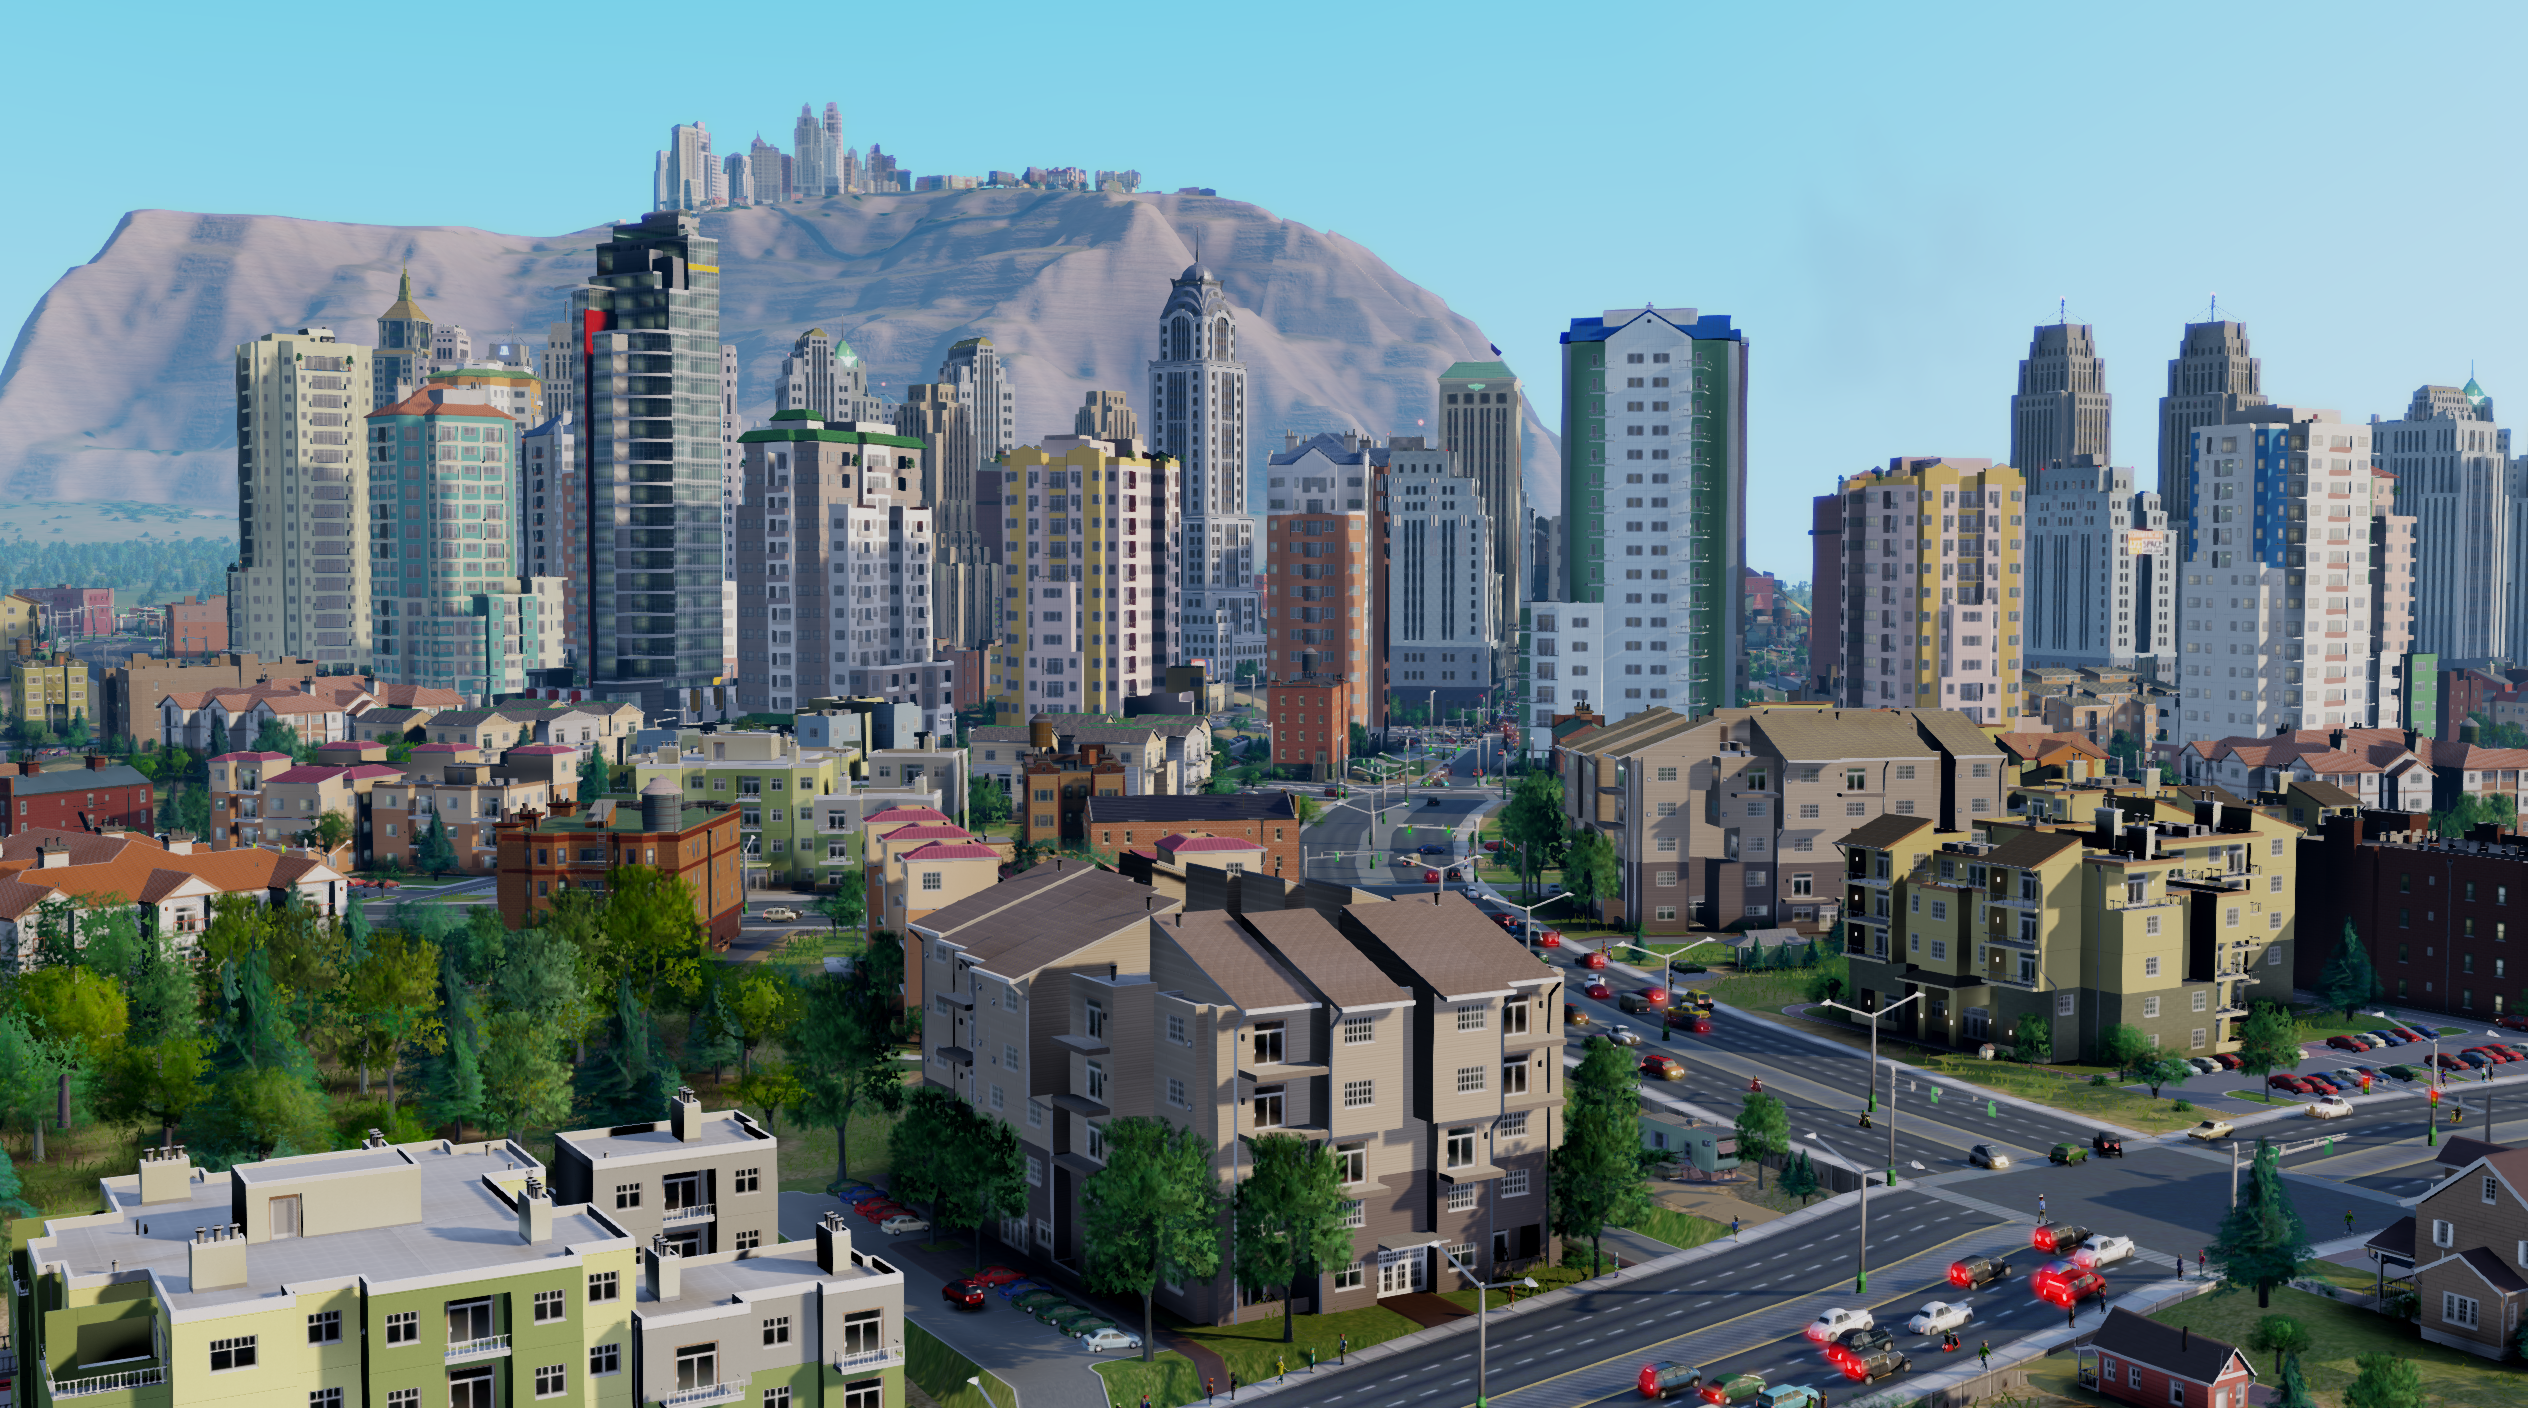 SimCity's botched launch